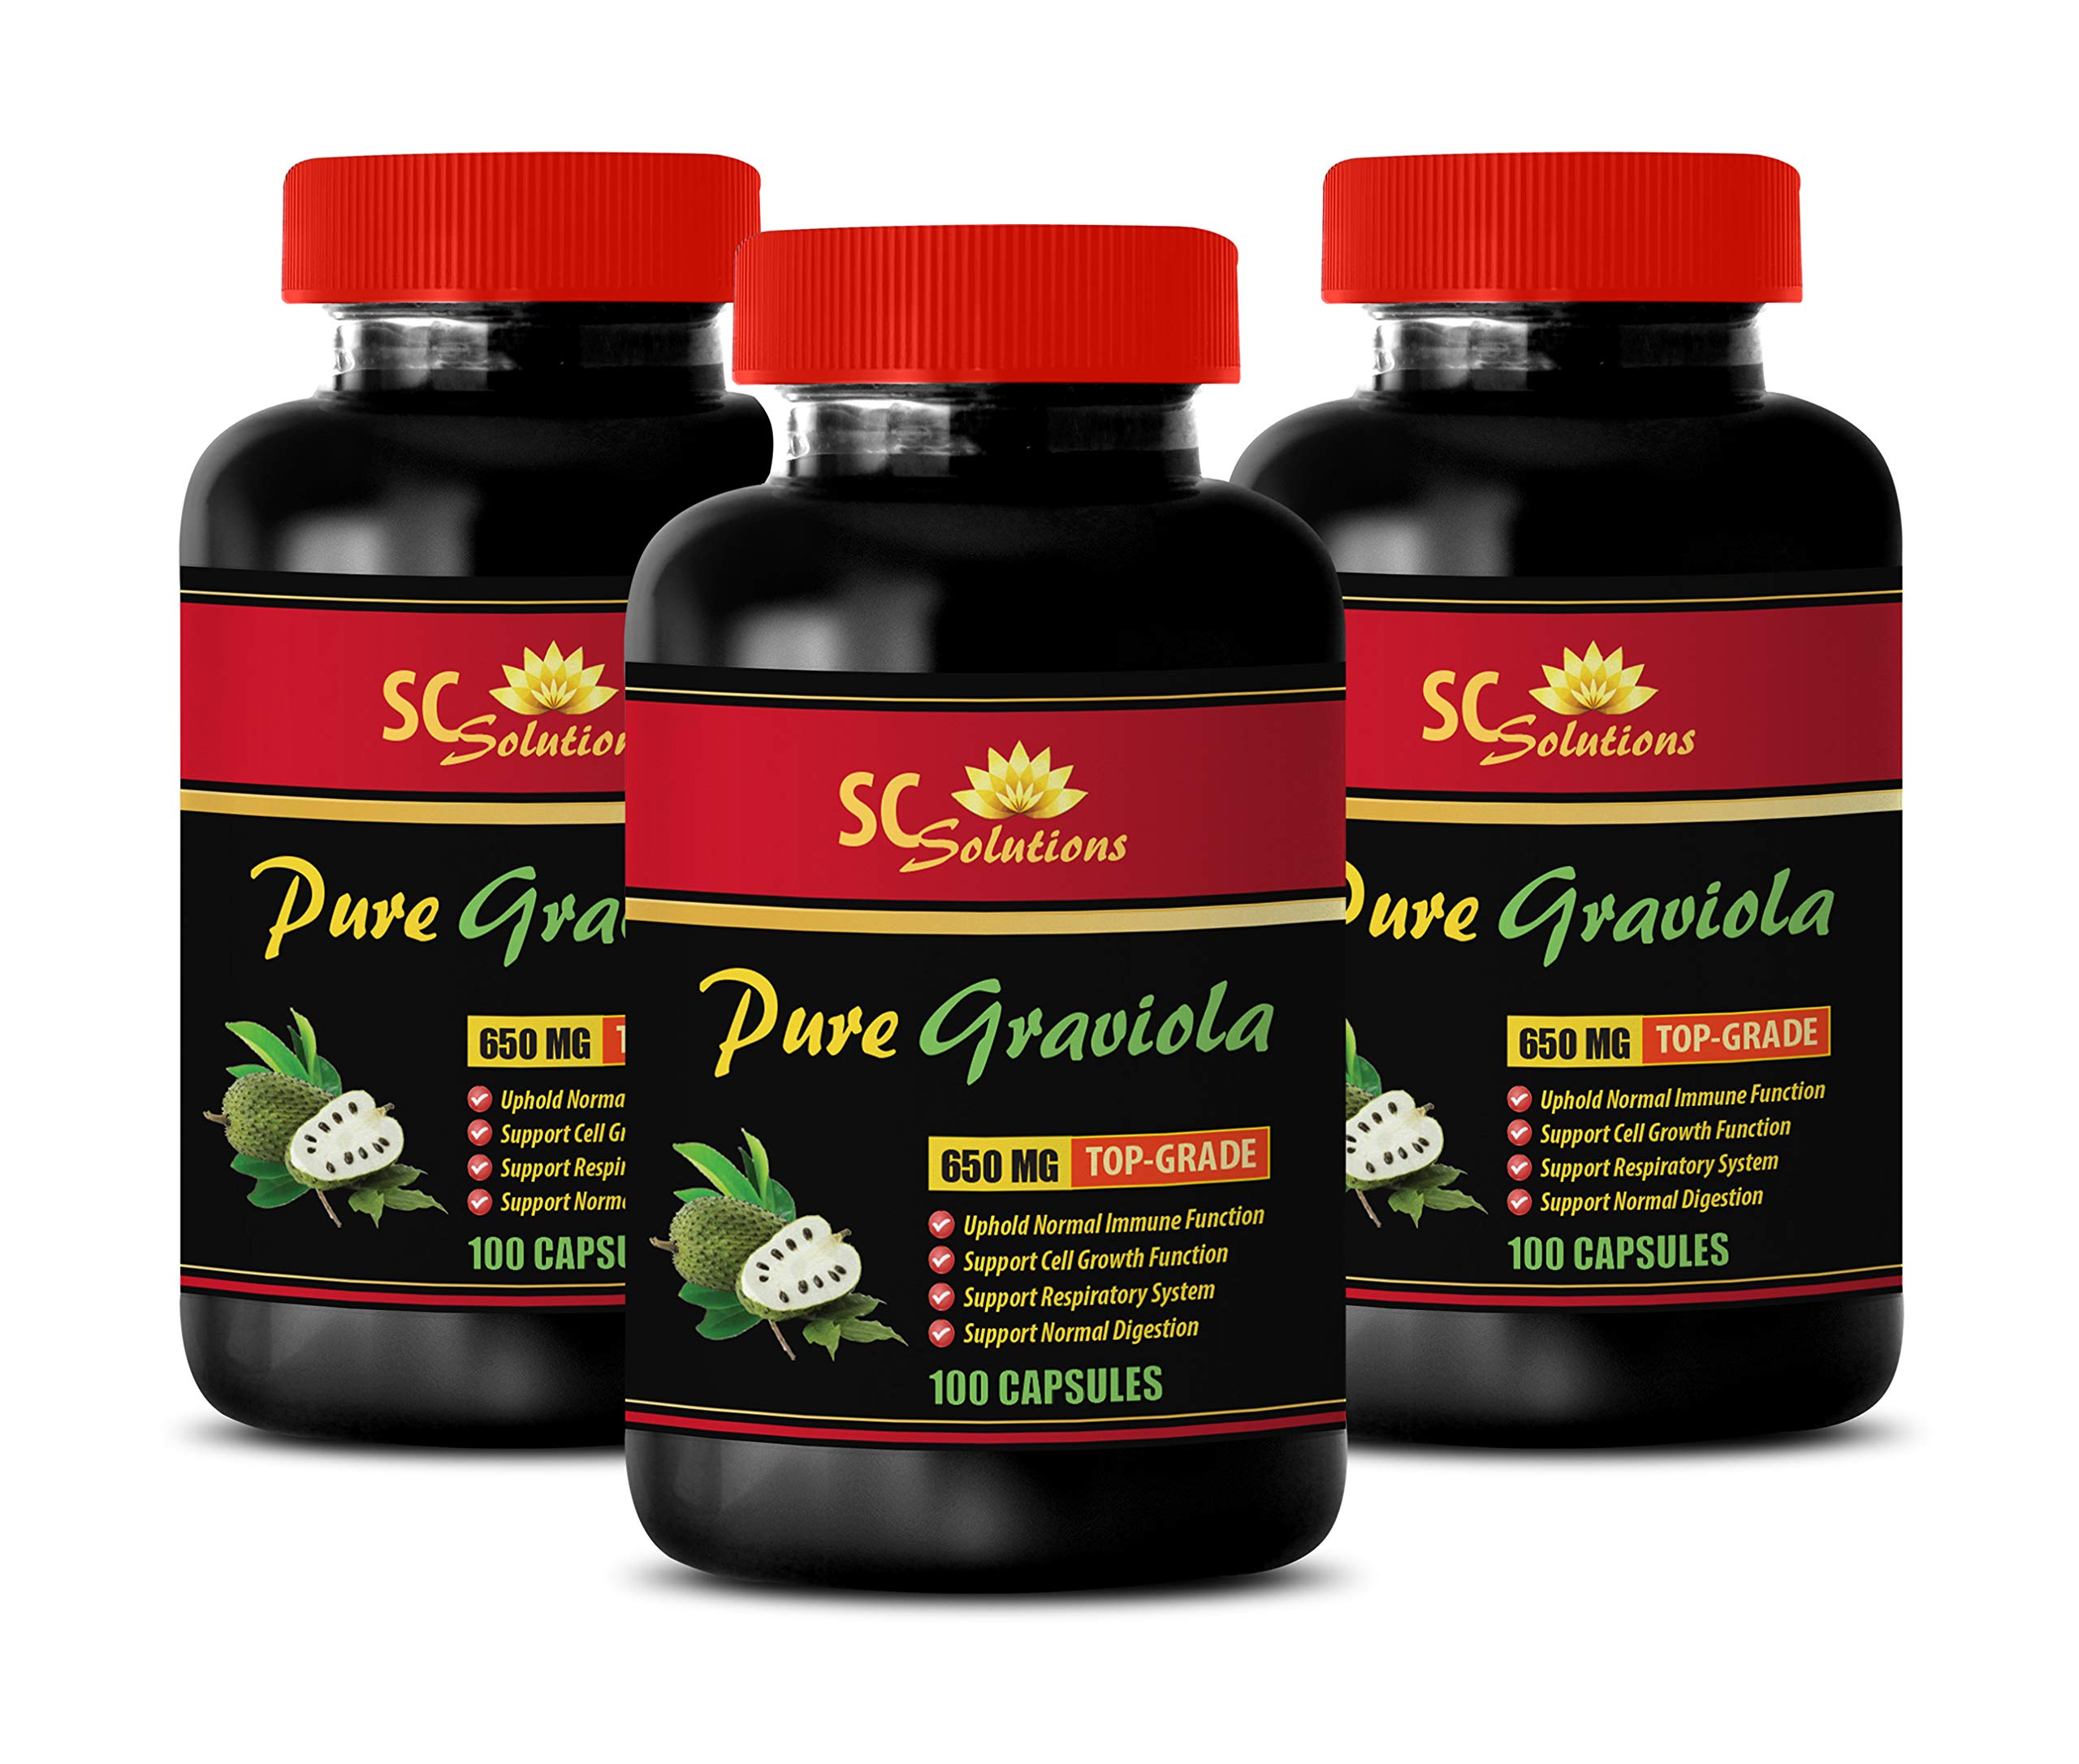 Digestive aid Pills - GRAVIOLA Leaf Extract (650Mg) - Guanabana Extract - 3 Bottles 300 Capsules